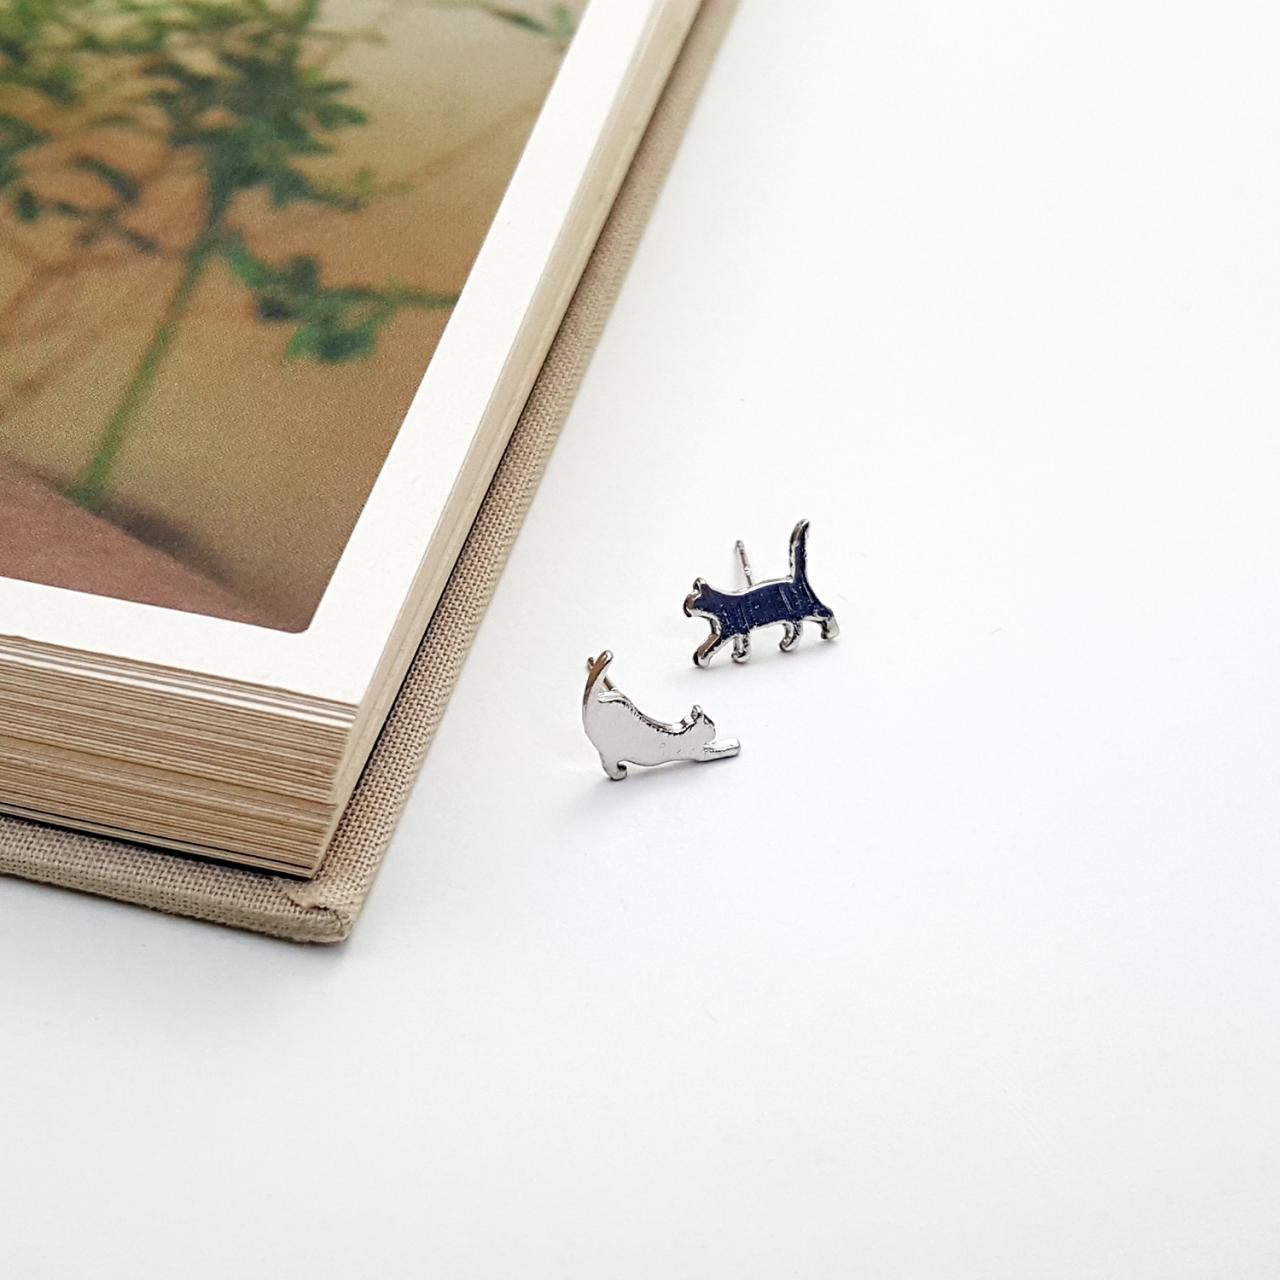 Stretching Cat stud earring in Silver | Minimalist Animal Jewelry